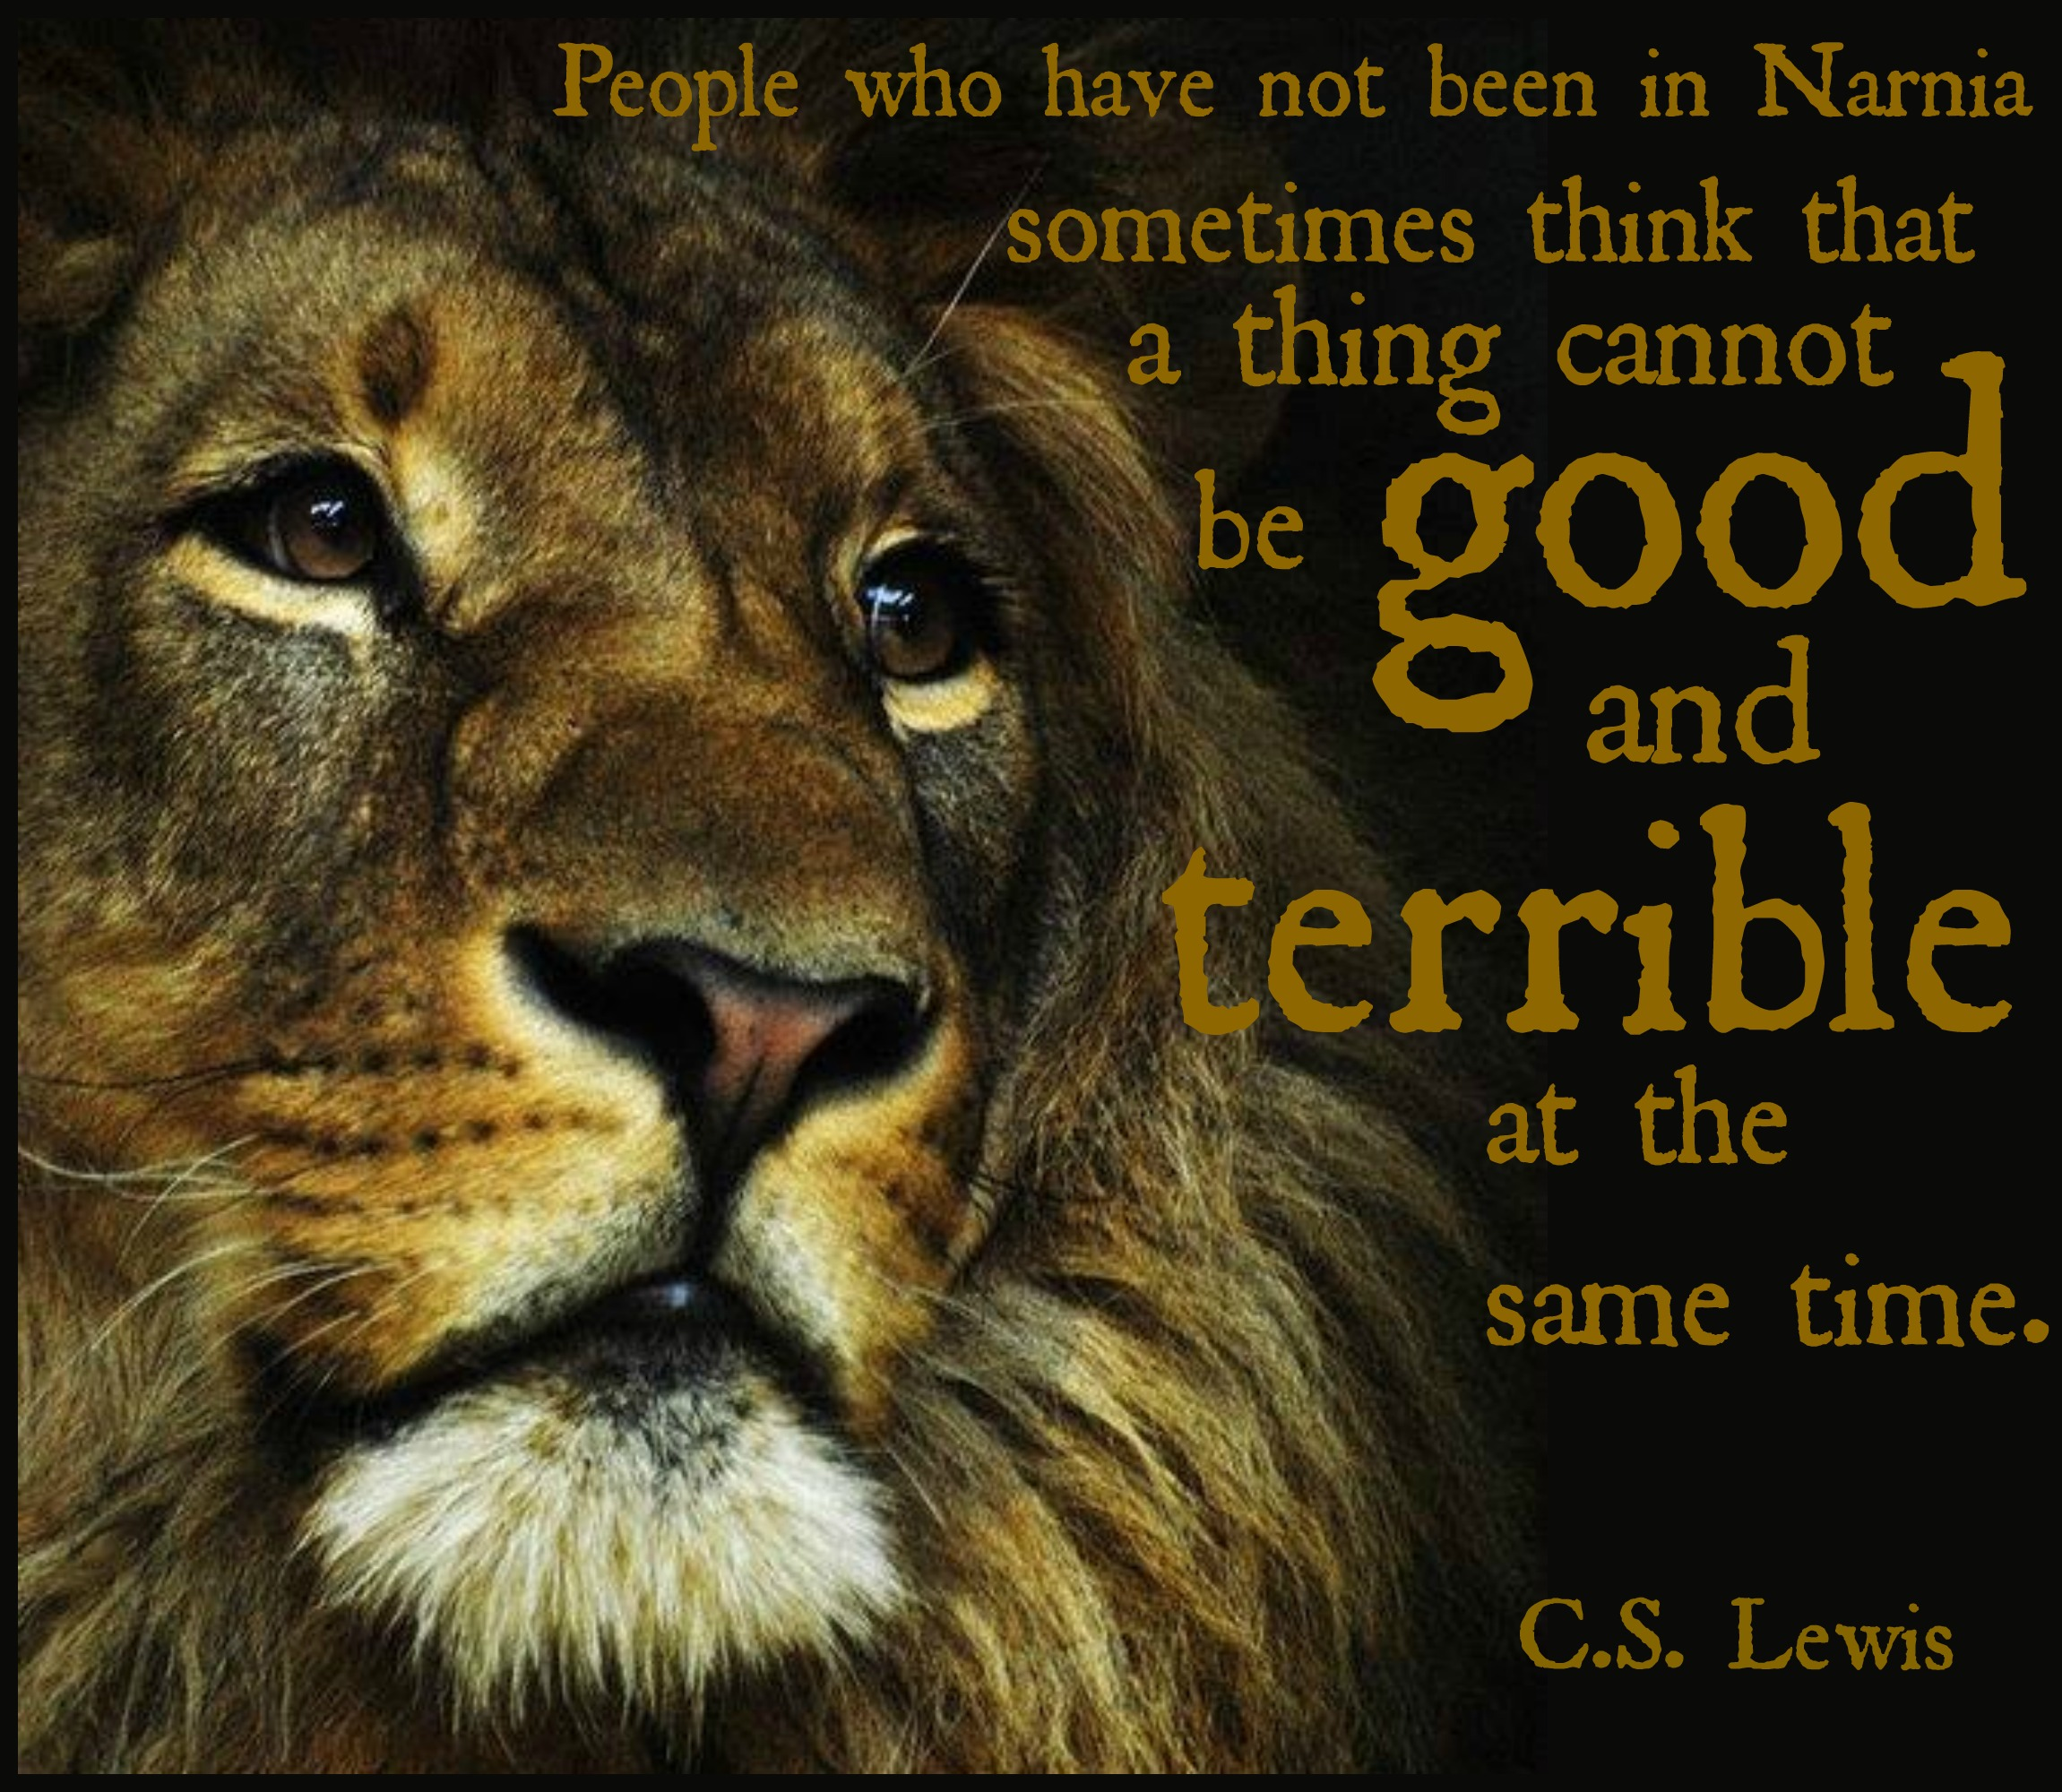 Chronicles of Narnia | JACKIE LEA SOMMERS for Narnia Aslan Quotes  153tgx